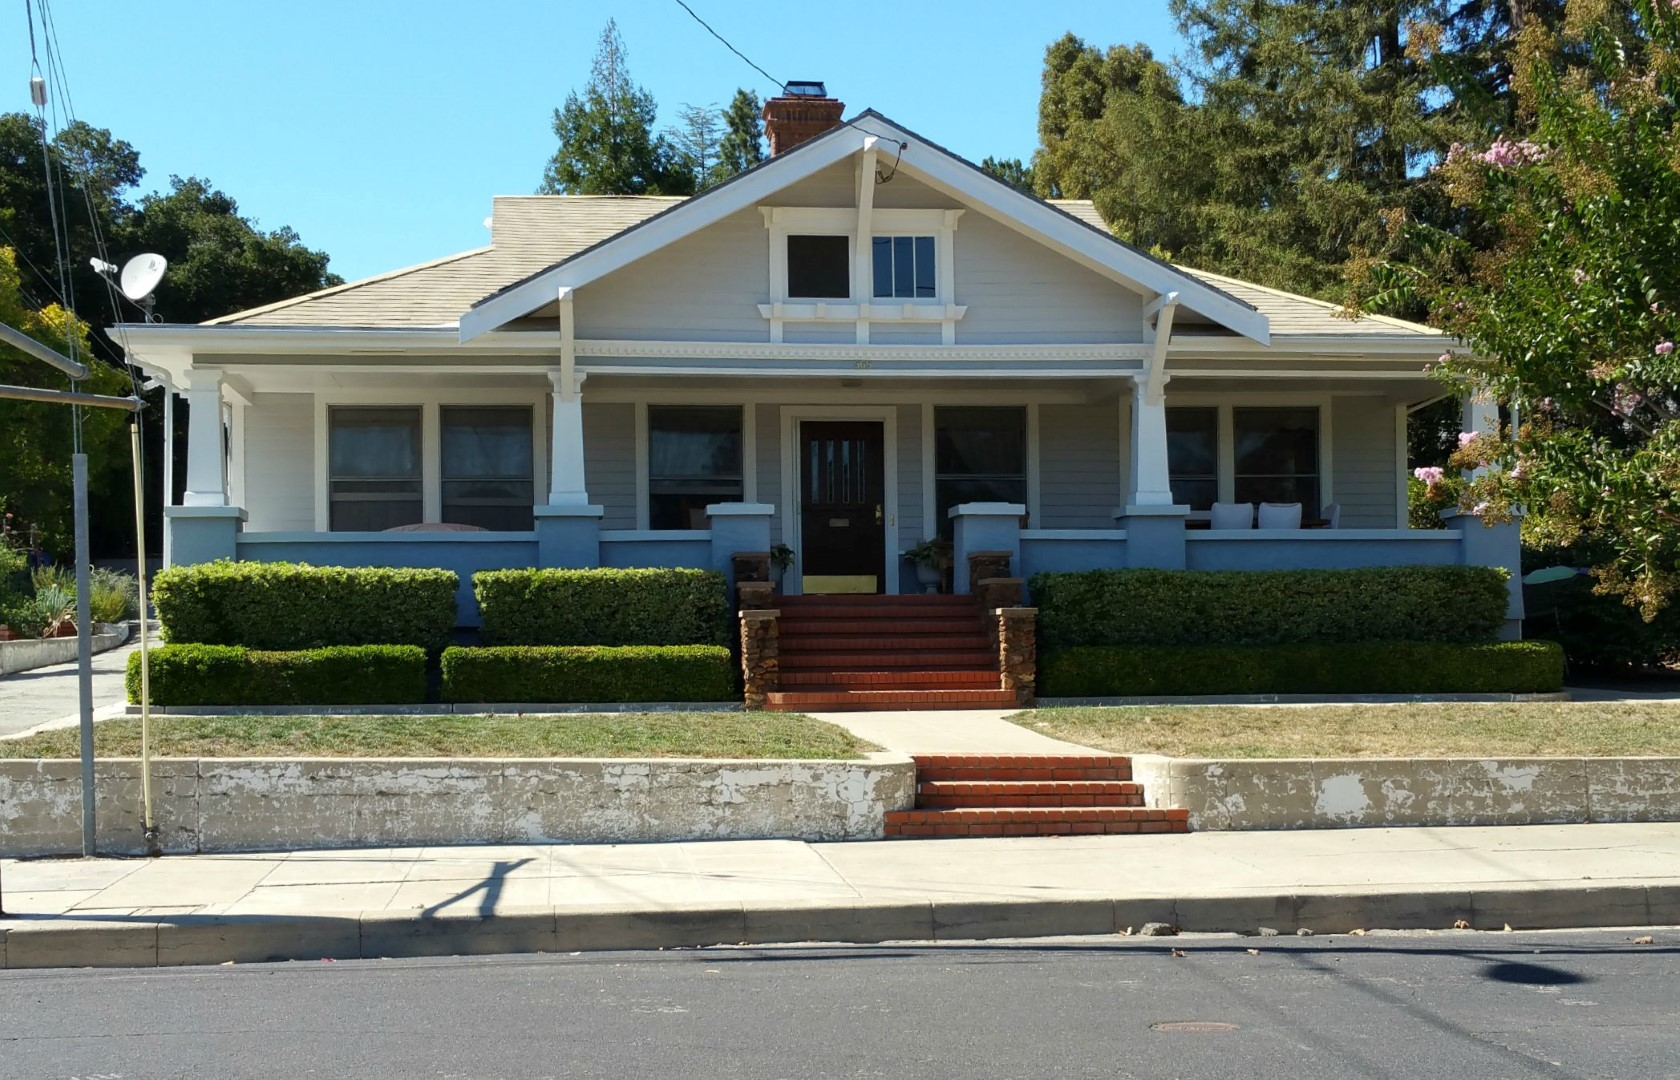 11 Craftsman on San Benito near Mariposa1 - Creffield Heights and San Benito Avenue area